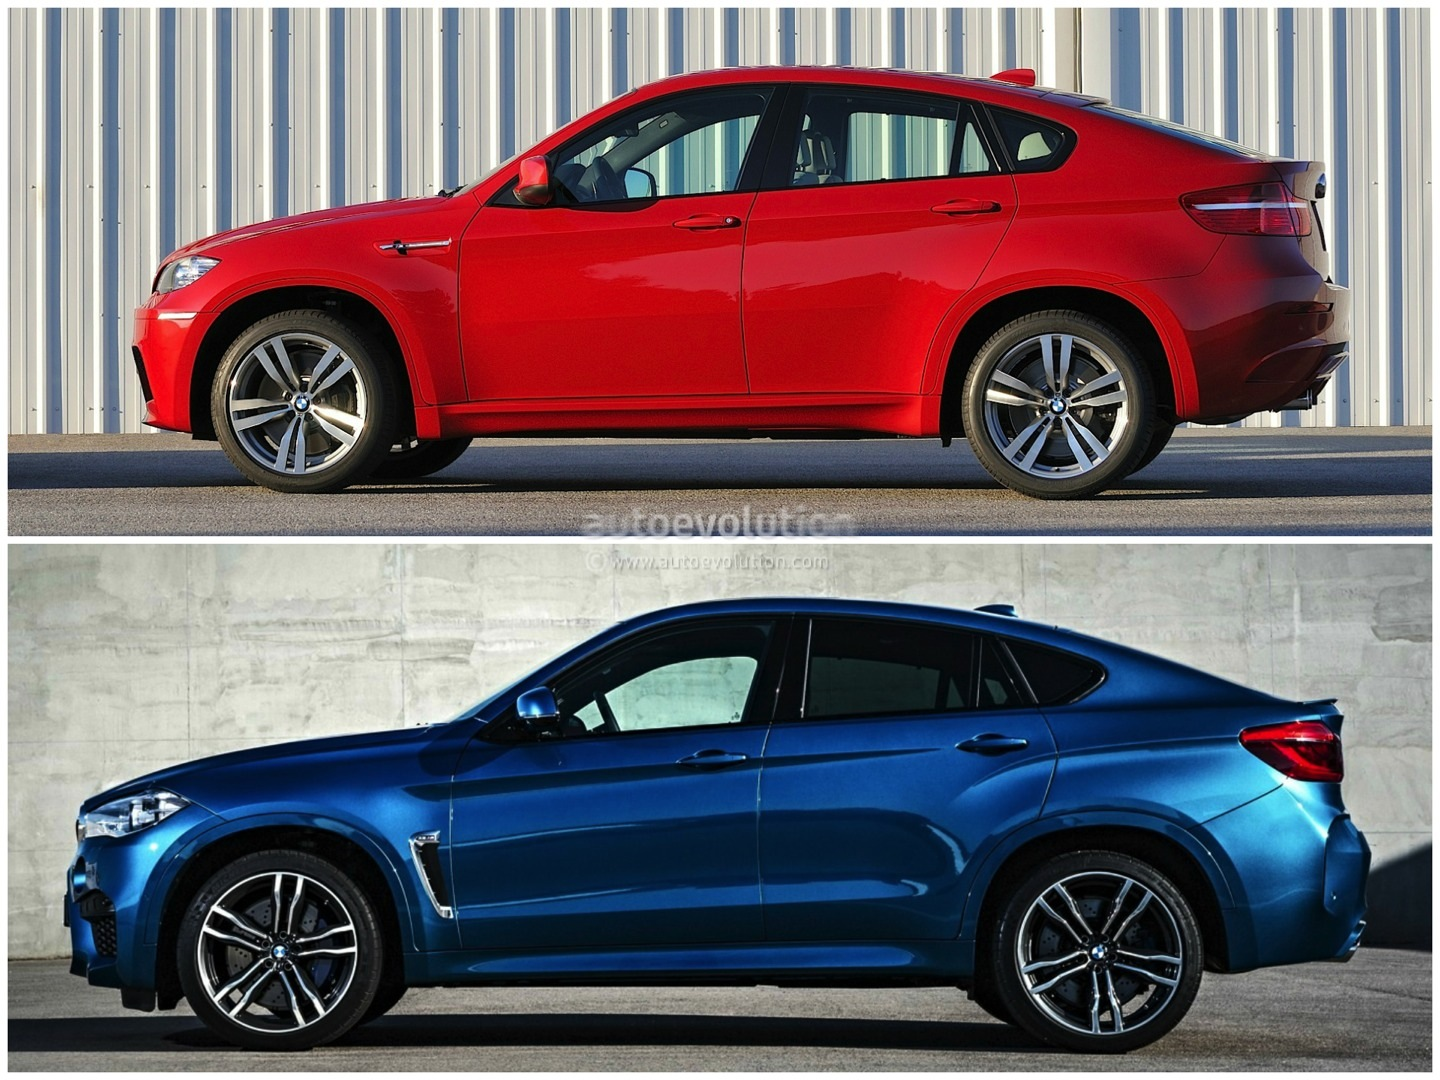 old vs new 2015 bmw x6 m compared to the original photo comparison autoevolution. Black Bedroom Furniture Sets. Home Design Ideas